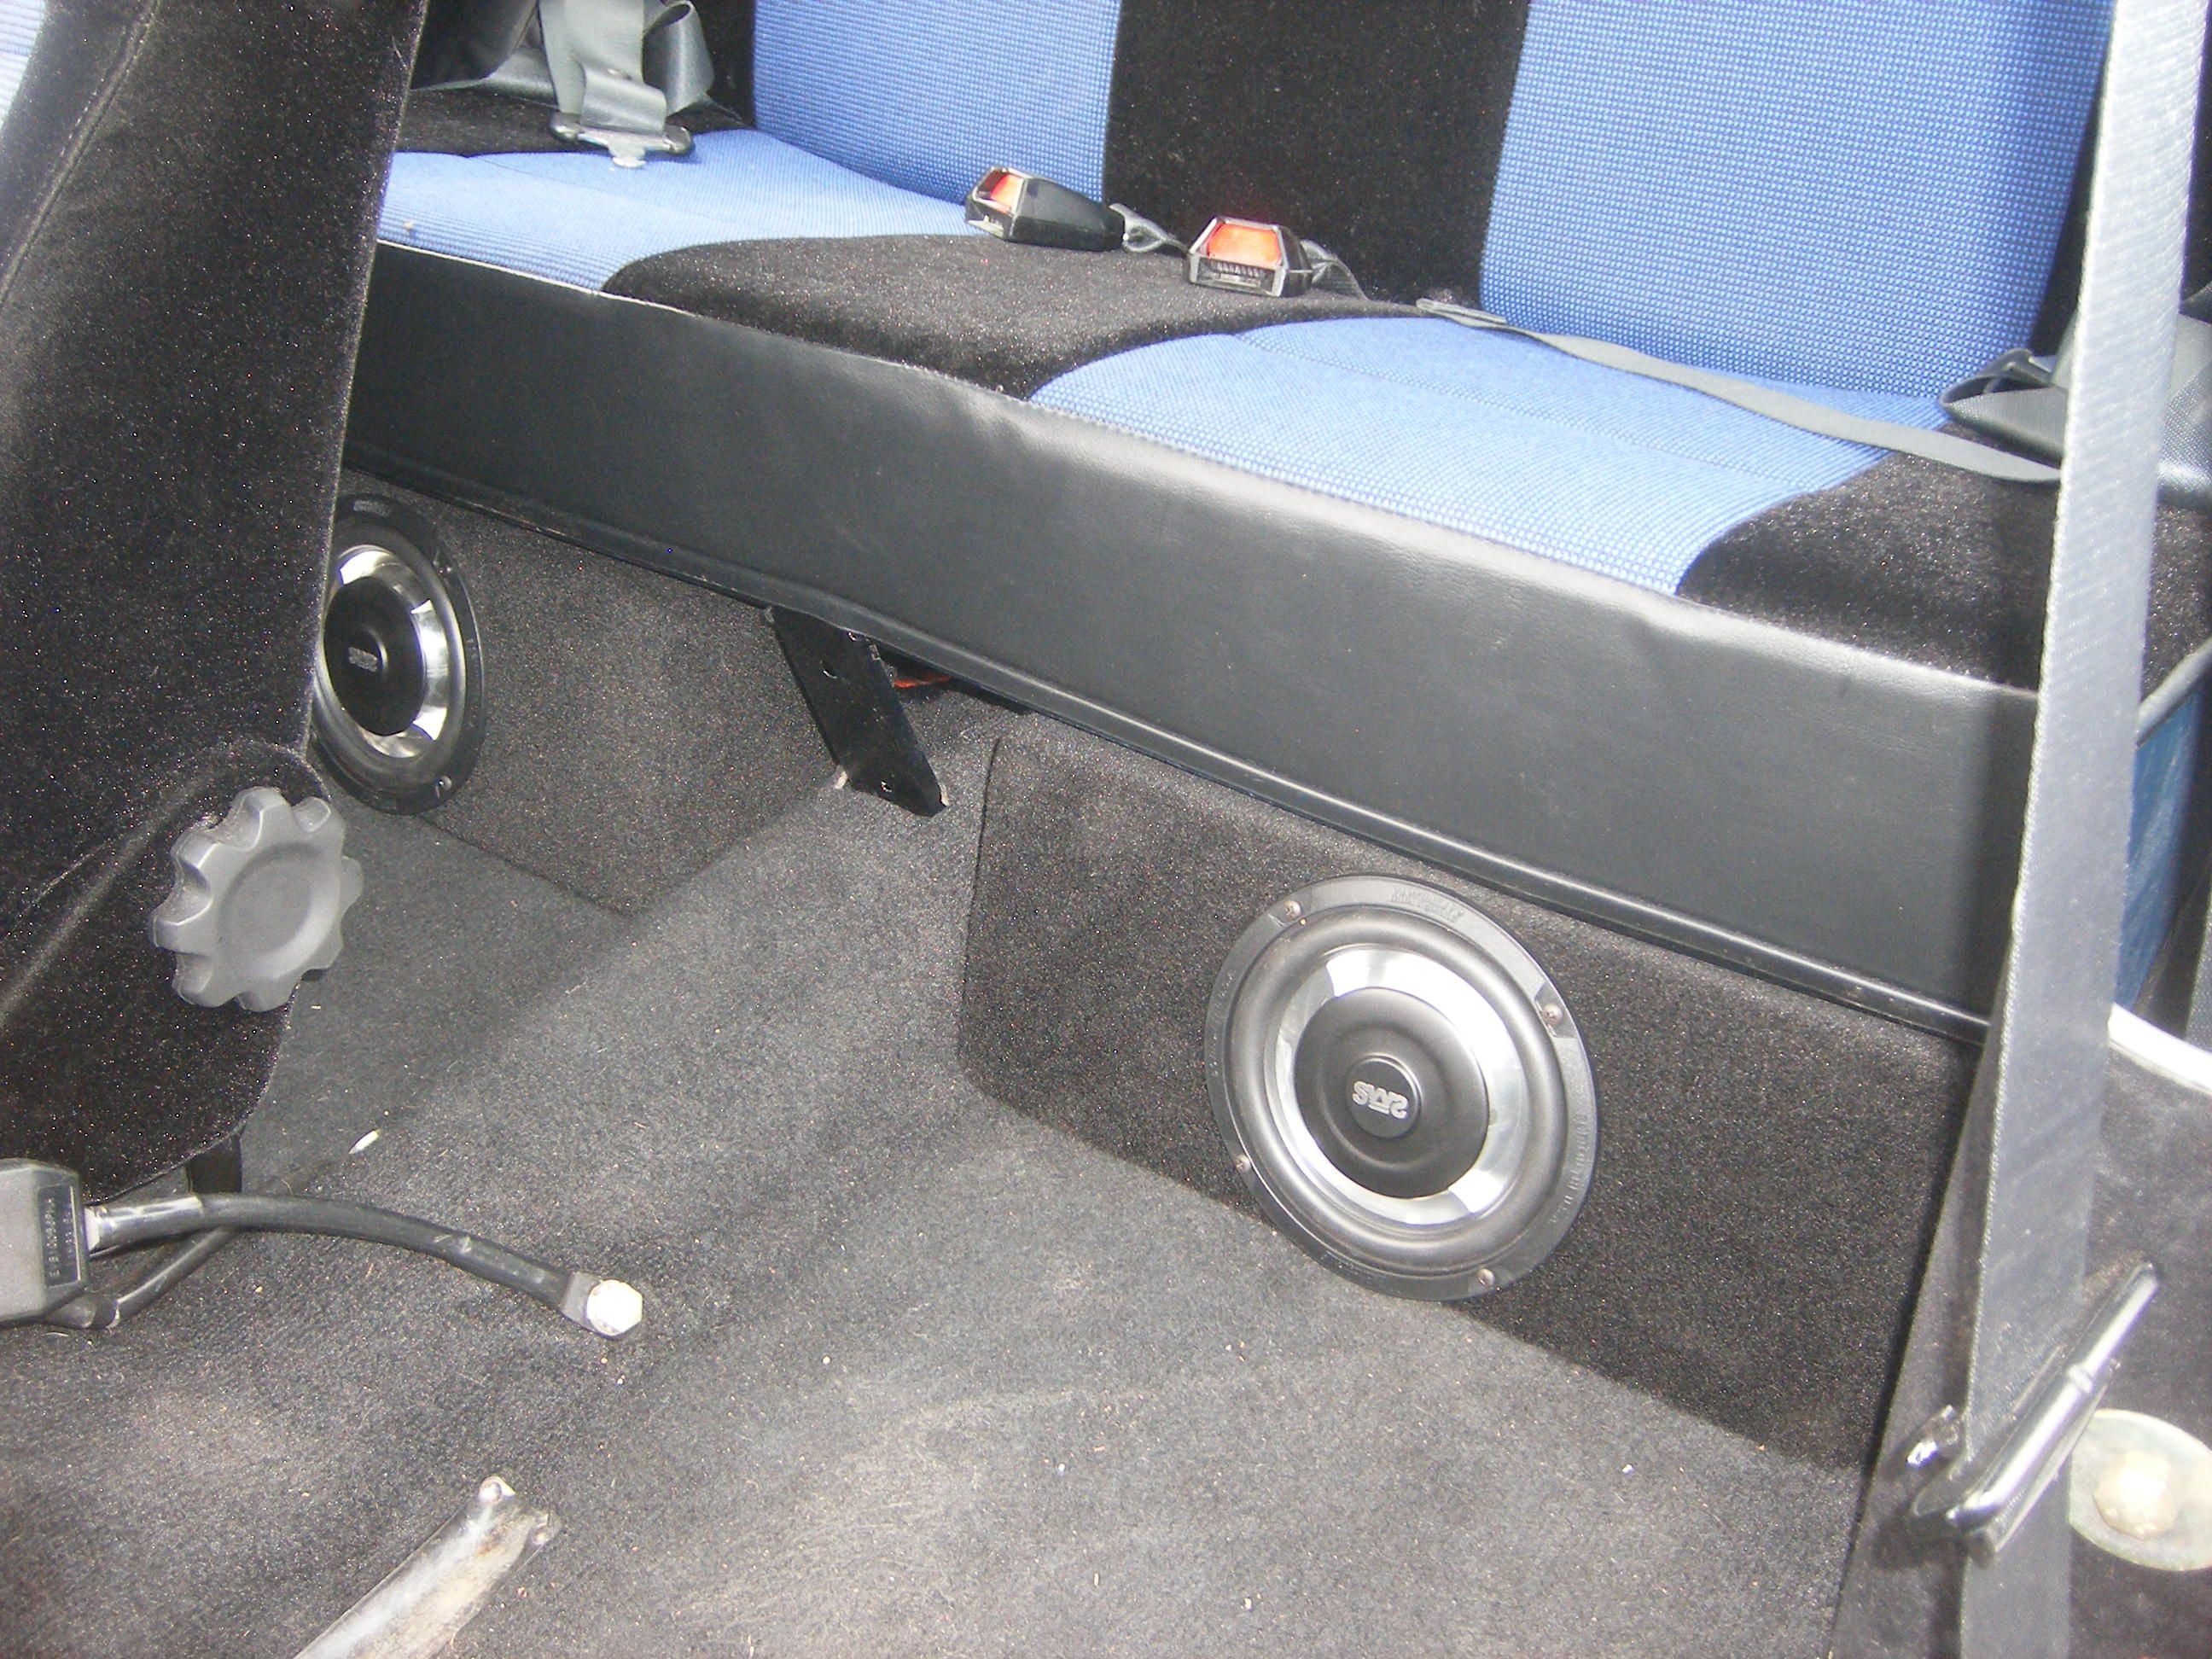 medium resolution of big or small we do it all back in 2007 we did a complete audio install on this right hand drive 76 mini upgrades included a sony stereo